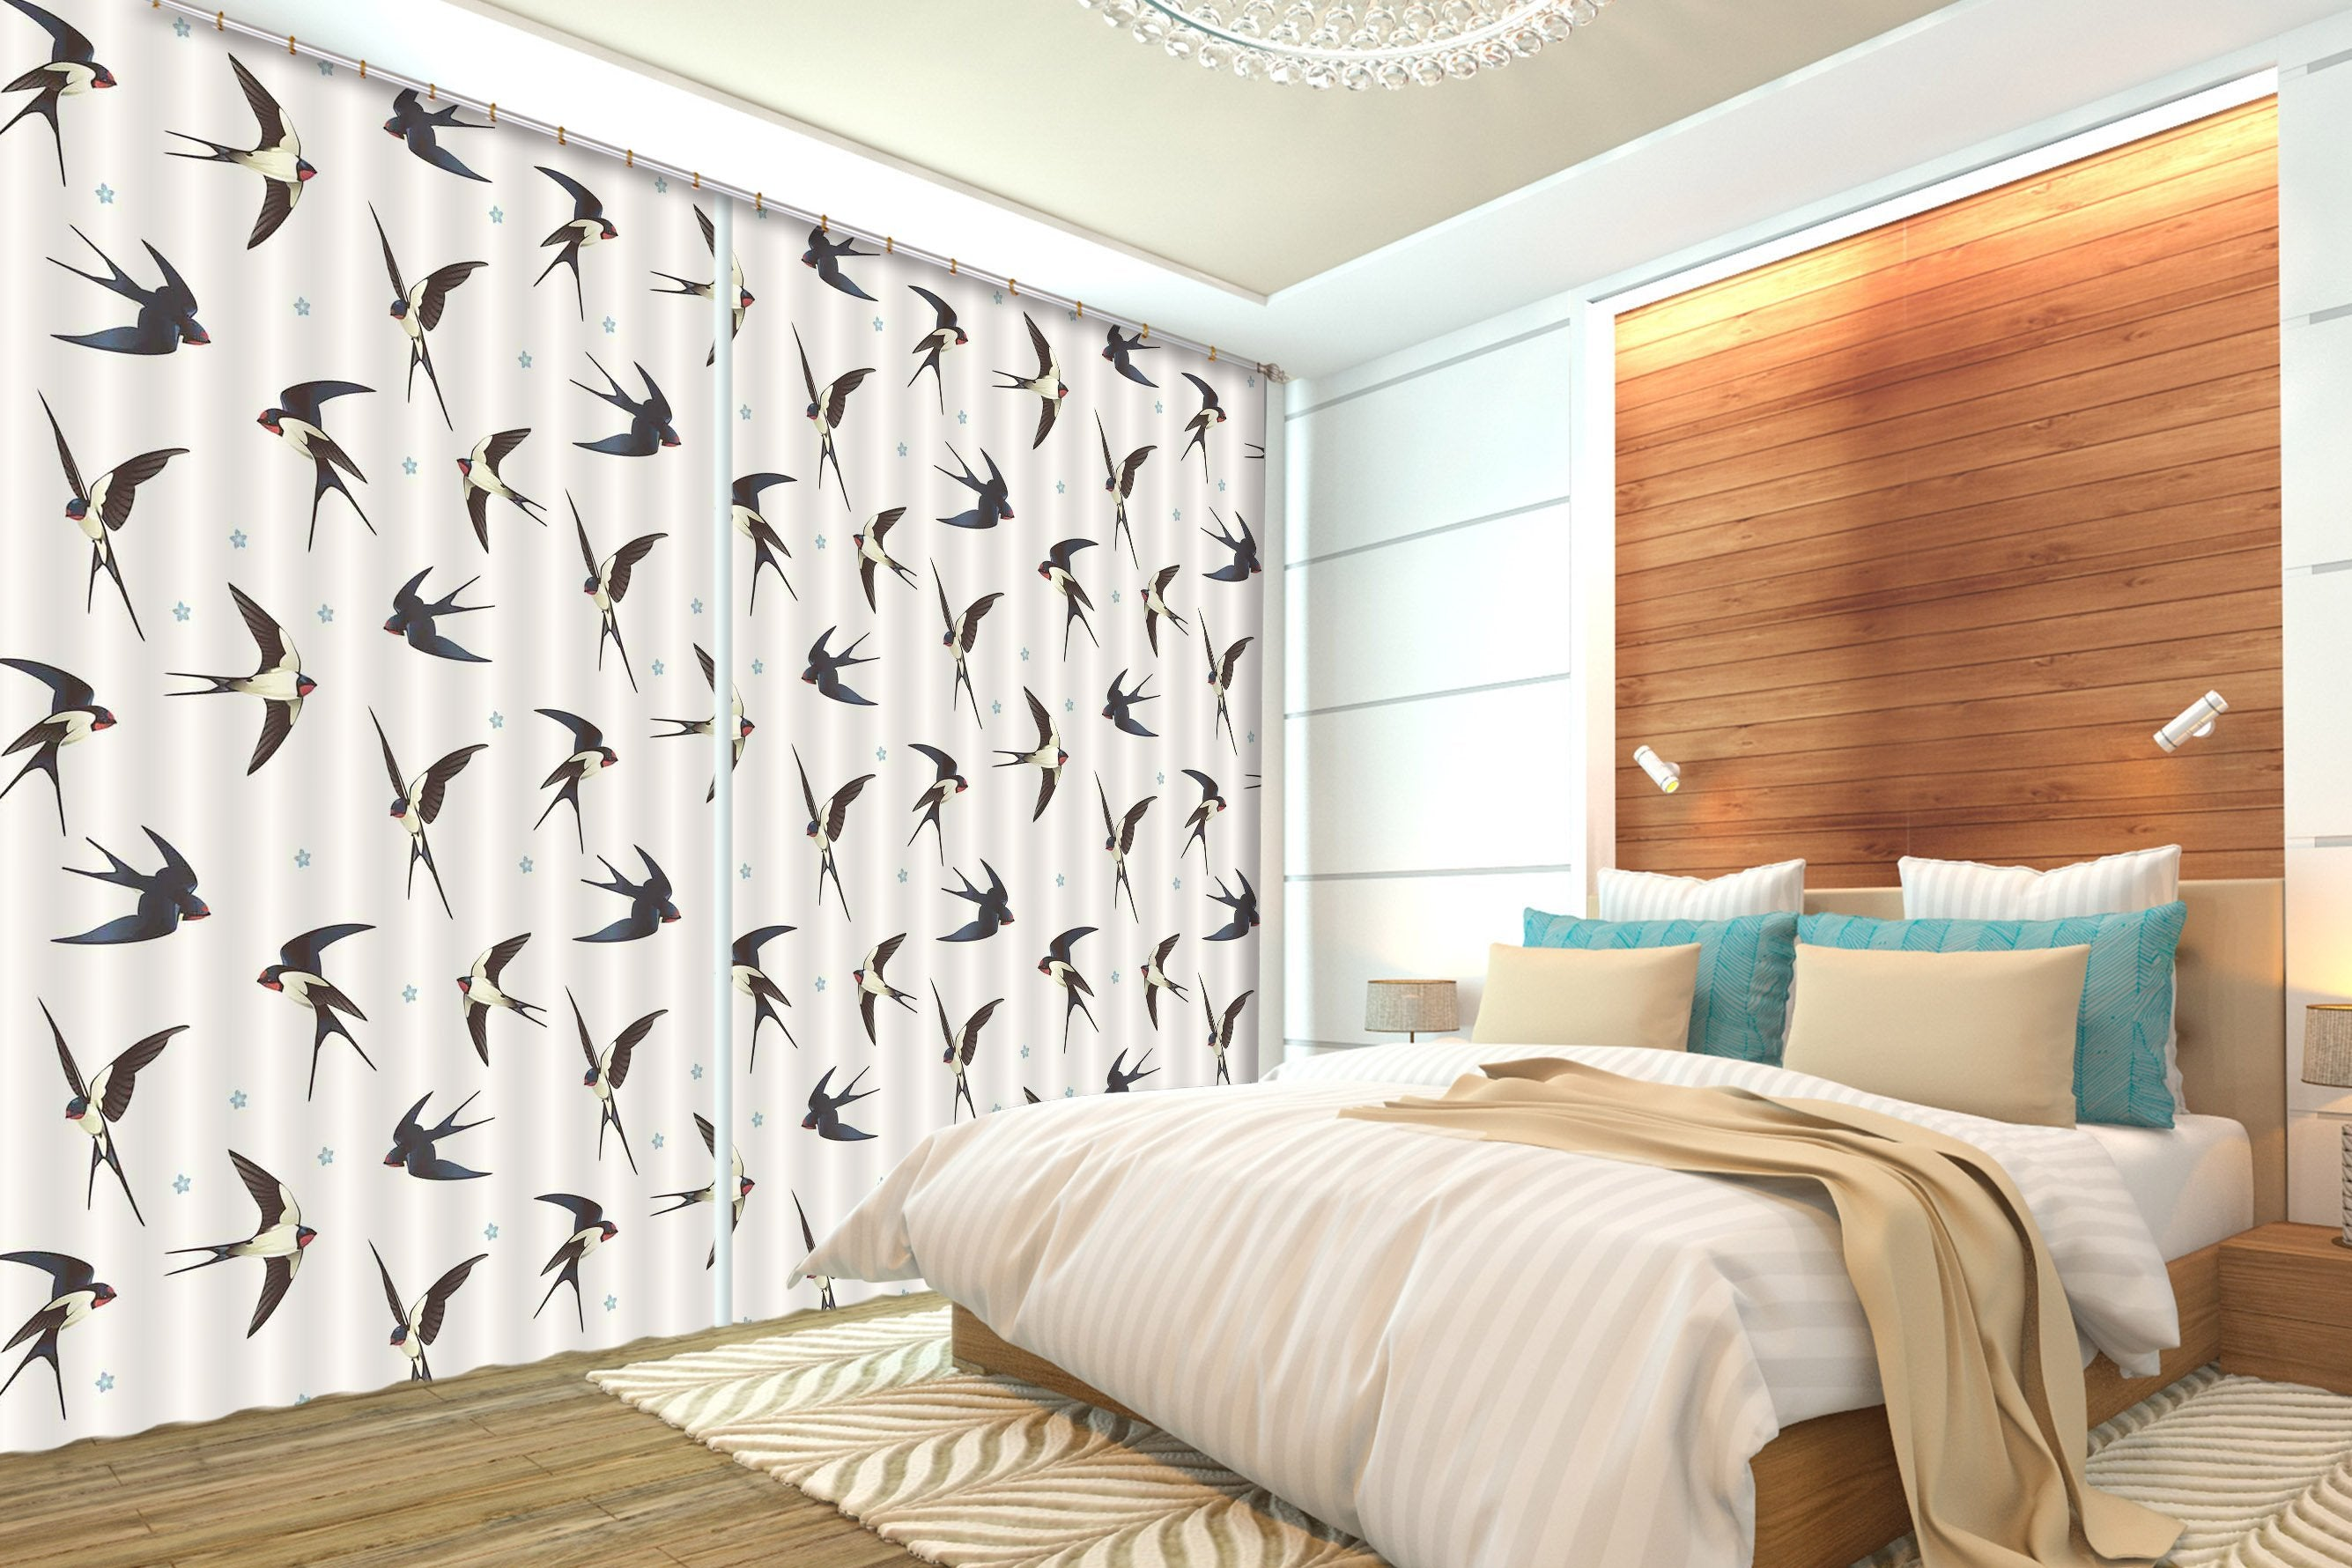 3D Swallows 2226 Curtains Drapes Wallpaper AJ Wallpaper